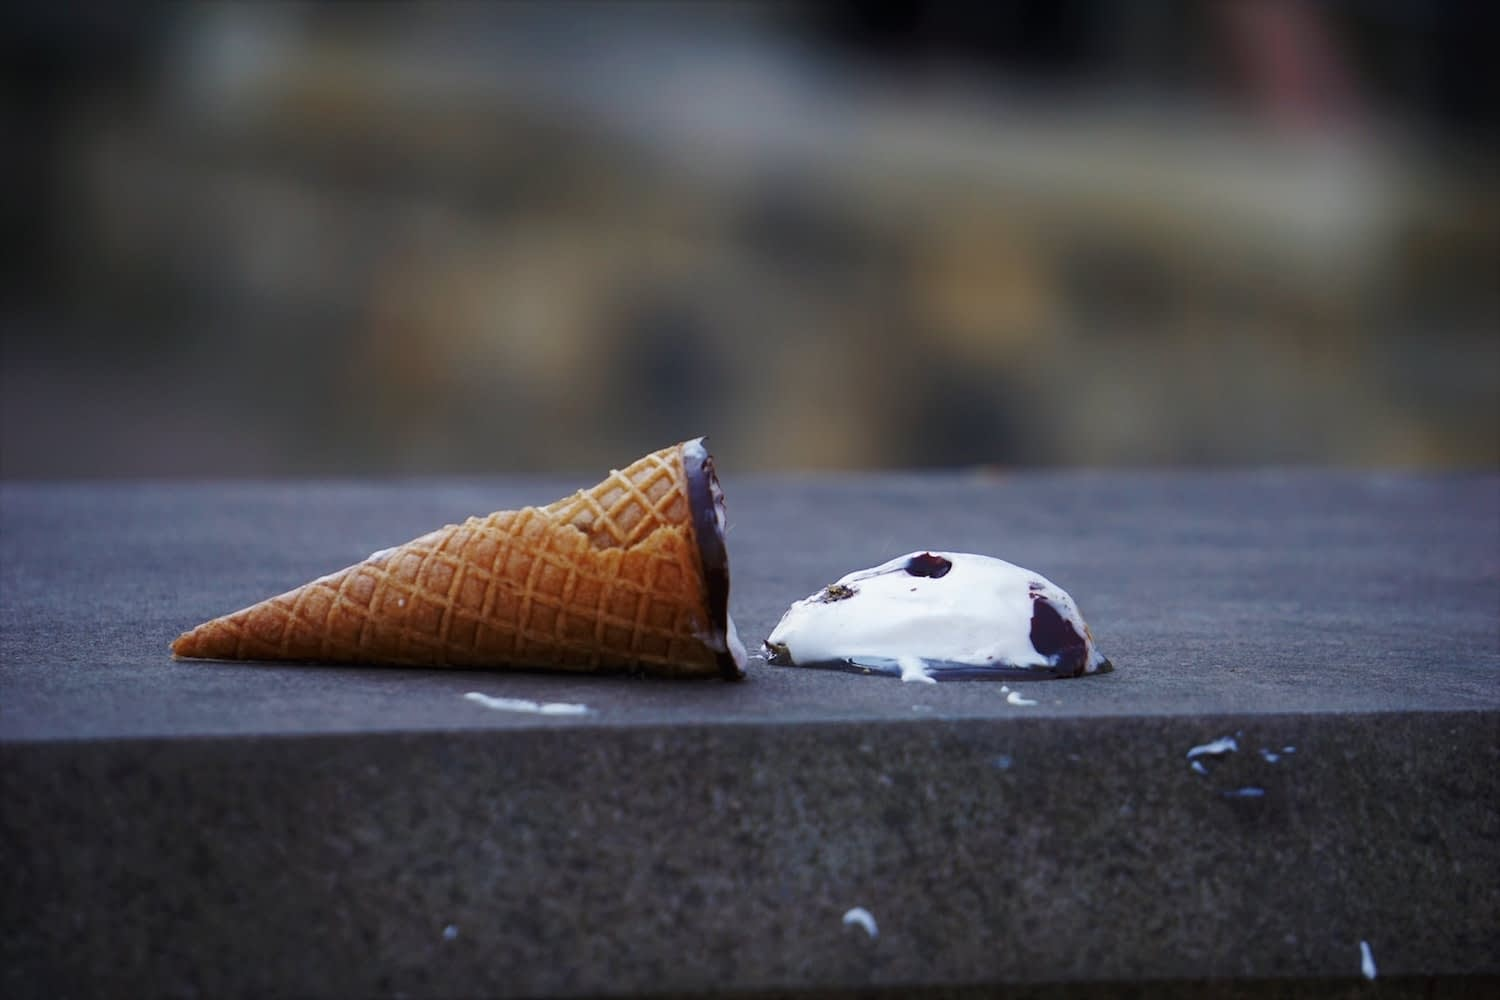 spilled ice cream - bridezilla article